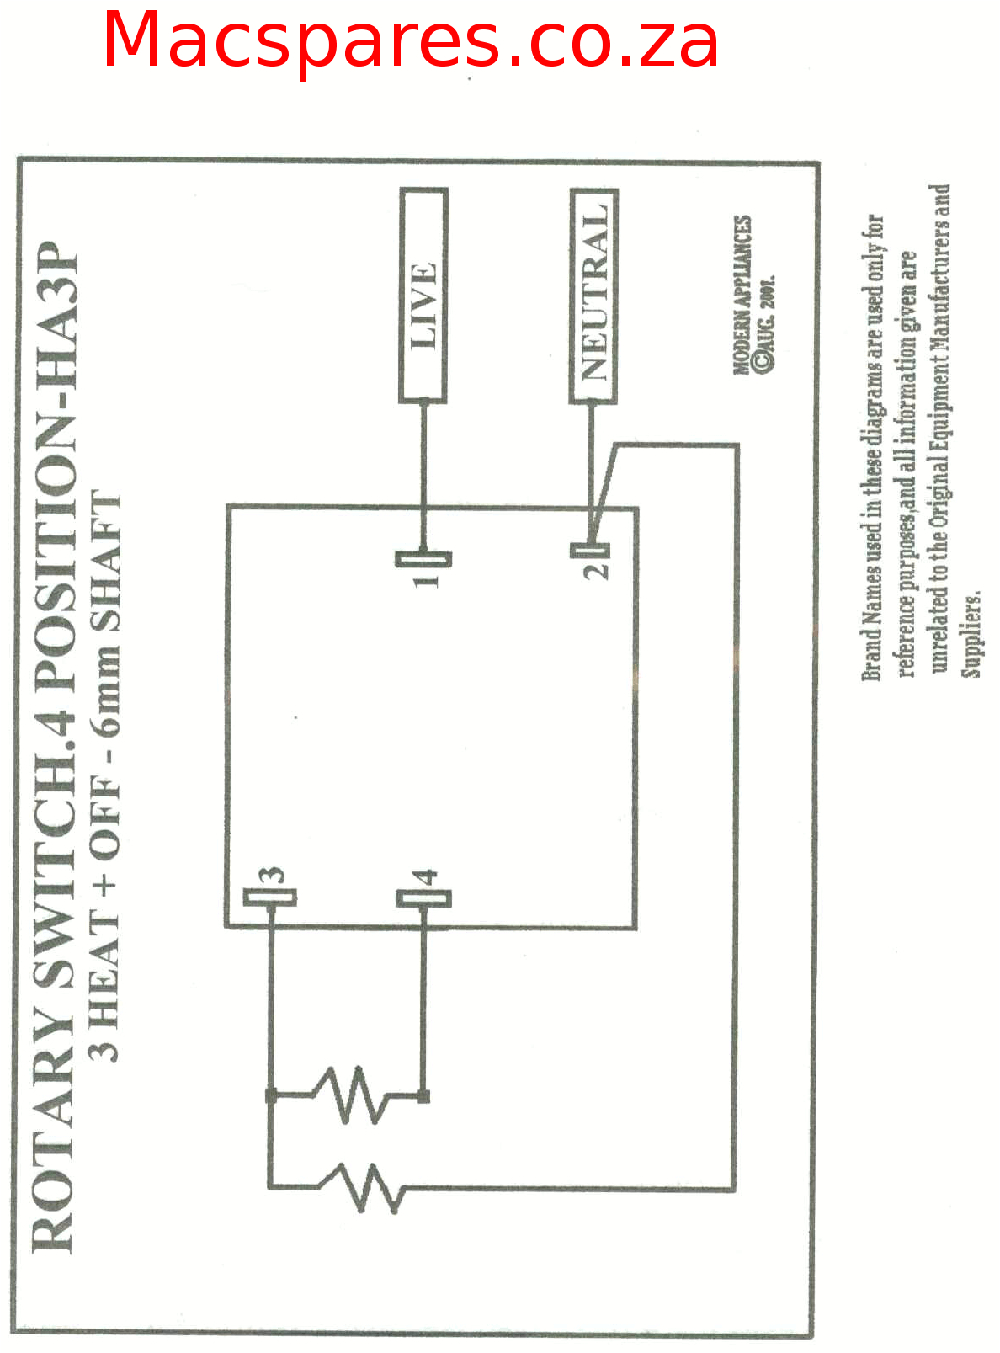 3 phase rotary isolator switch wiring diagram wiring diagram inside jpg